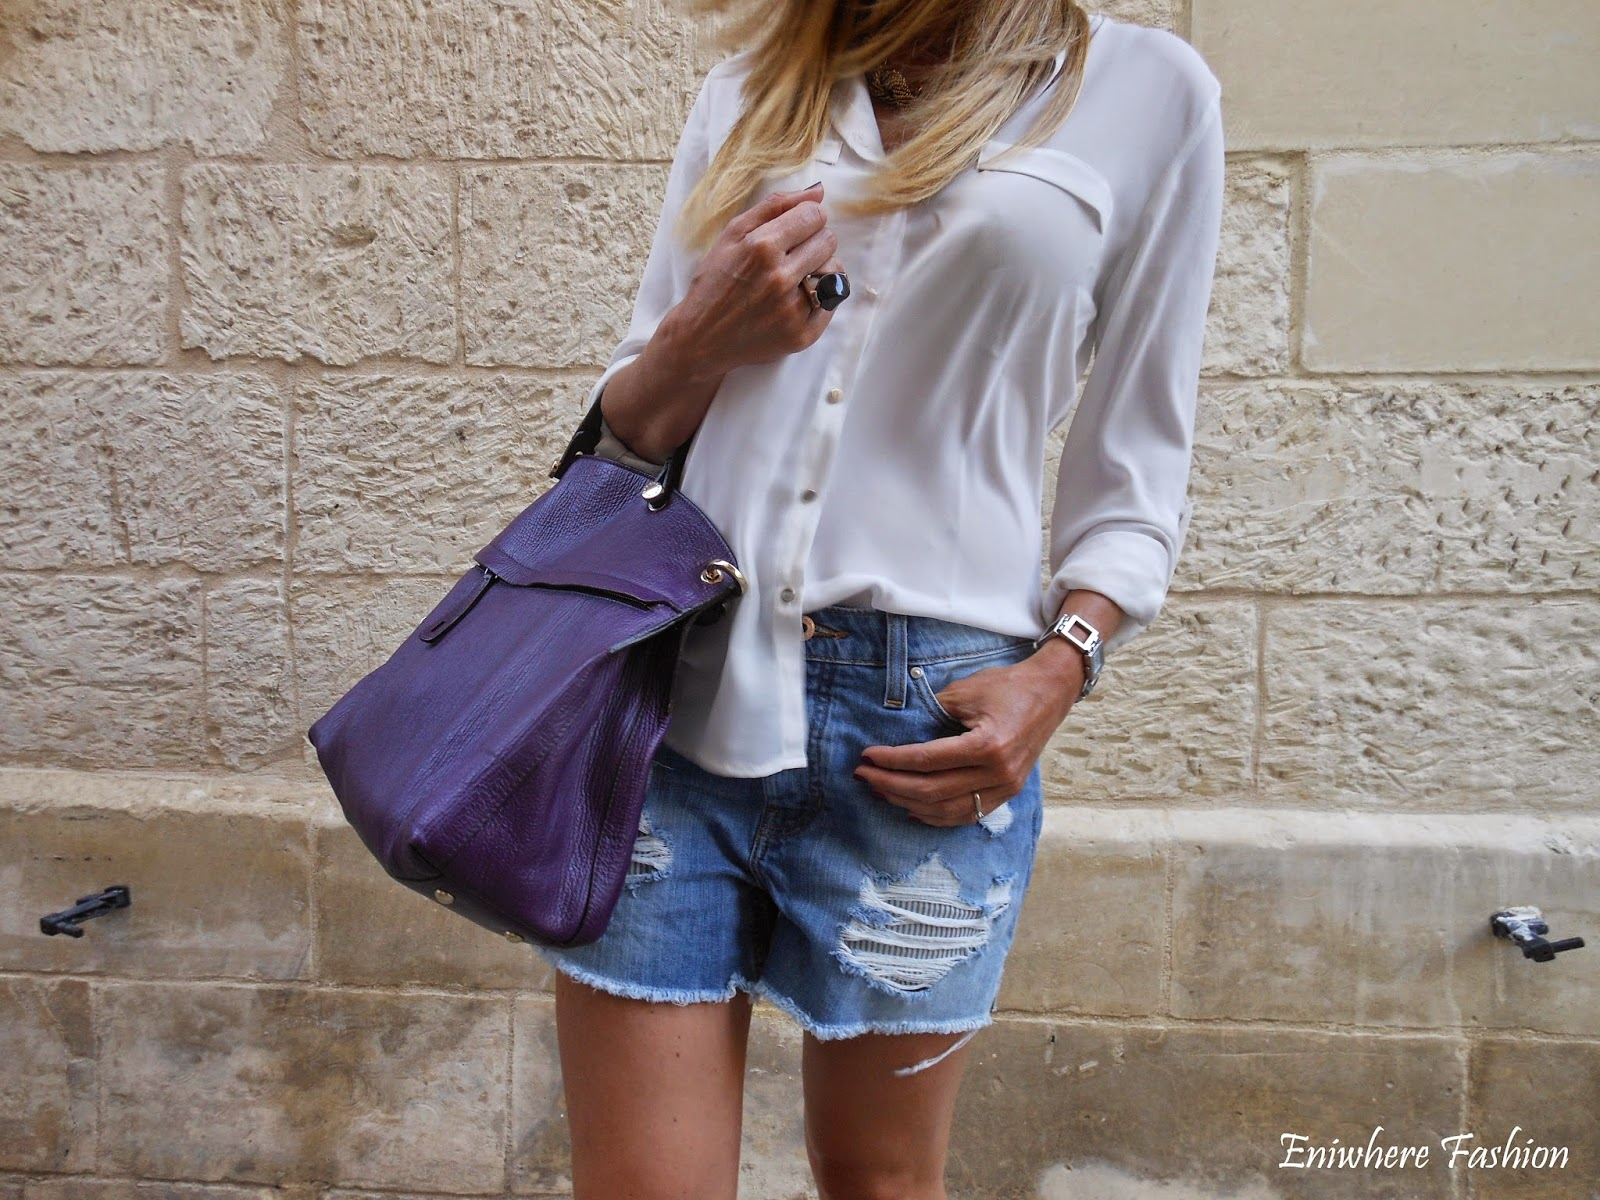 Eniwhere Fashion - Lecce - Shorts Mango